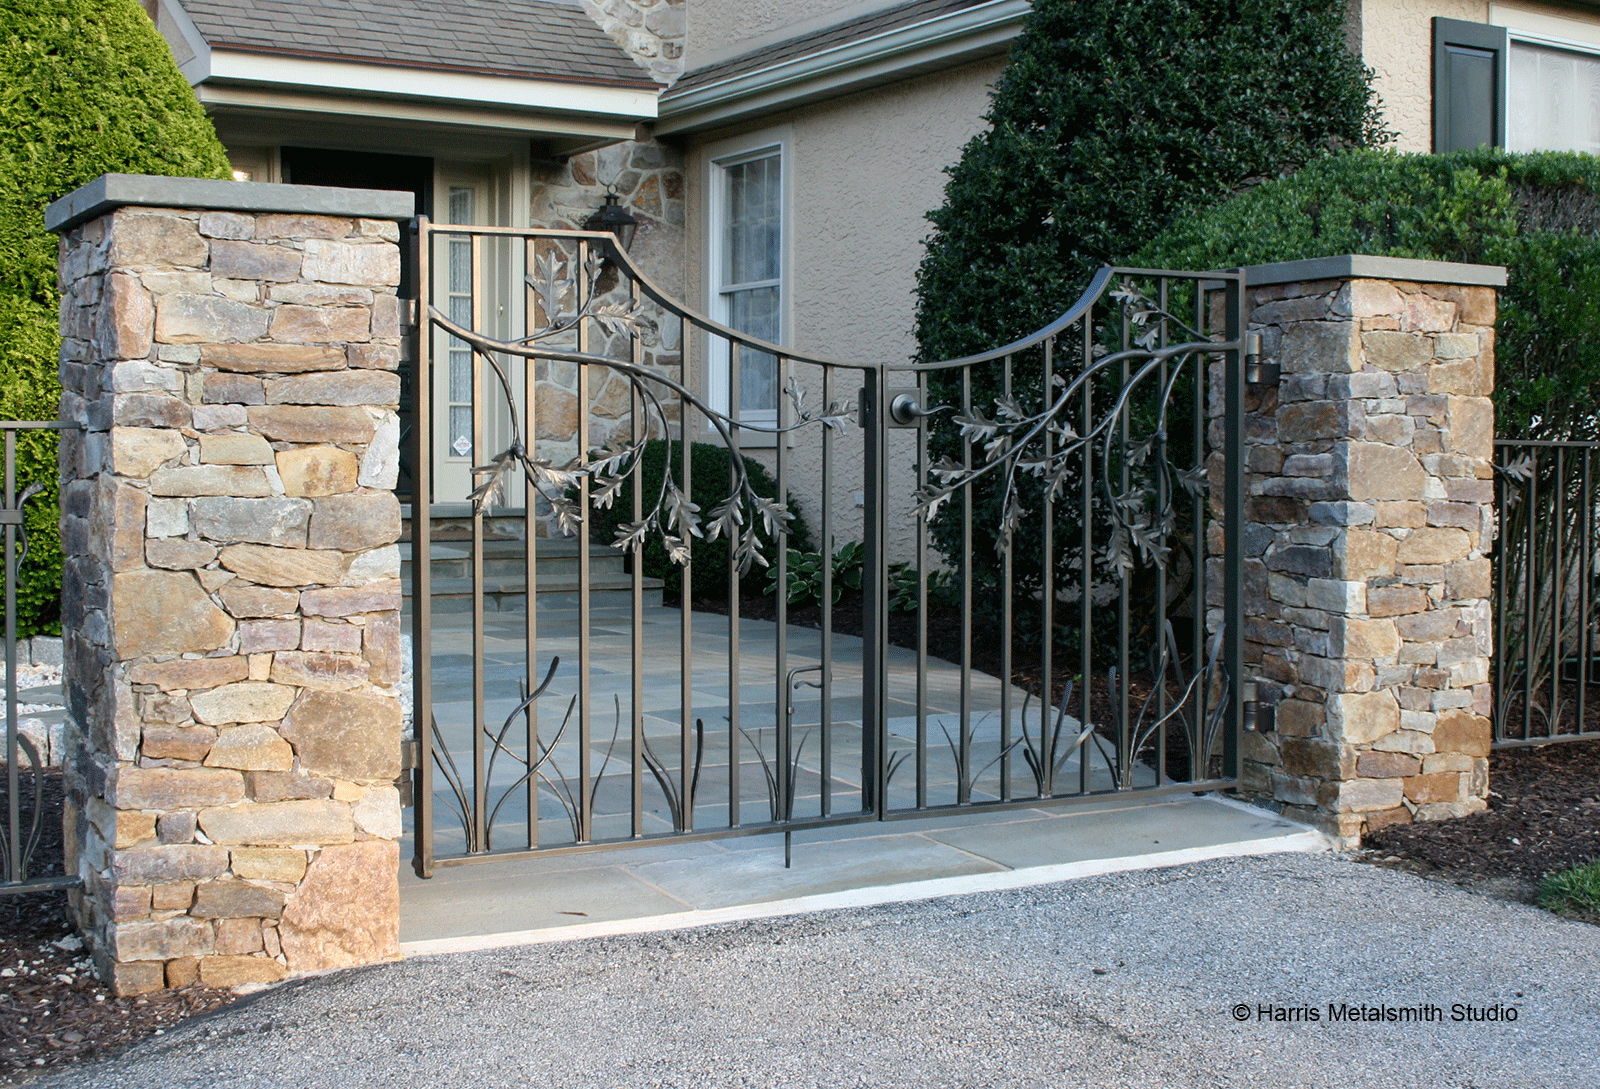 We envision the above gates installed similar to this.